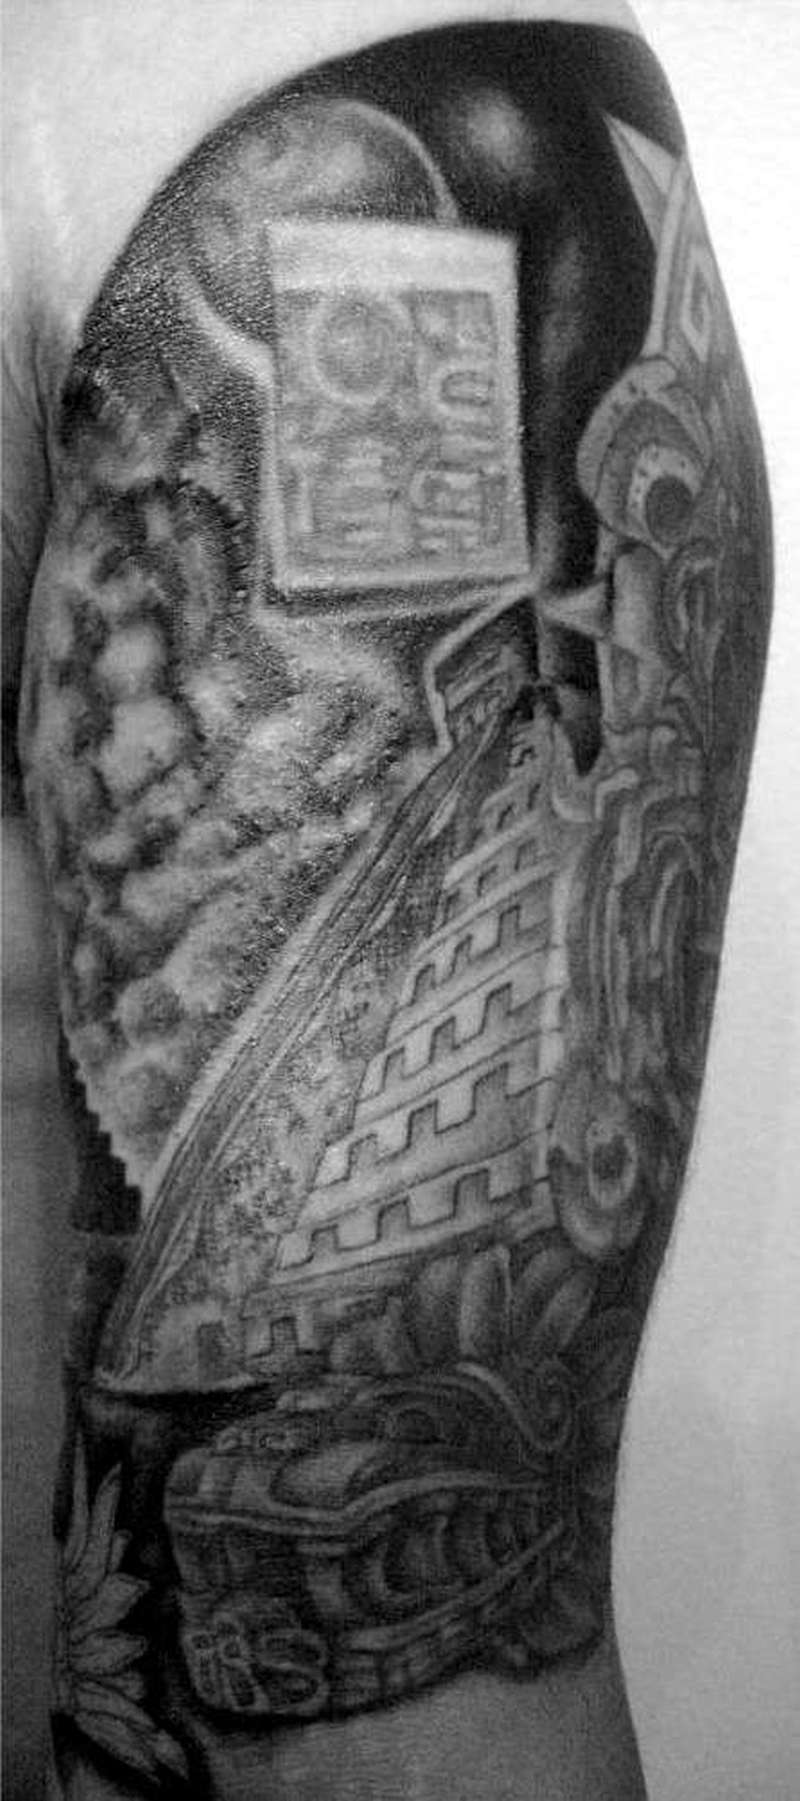 Aztec pyramid along with the dark energy tattoo